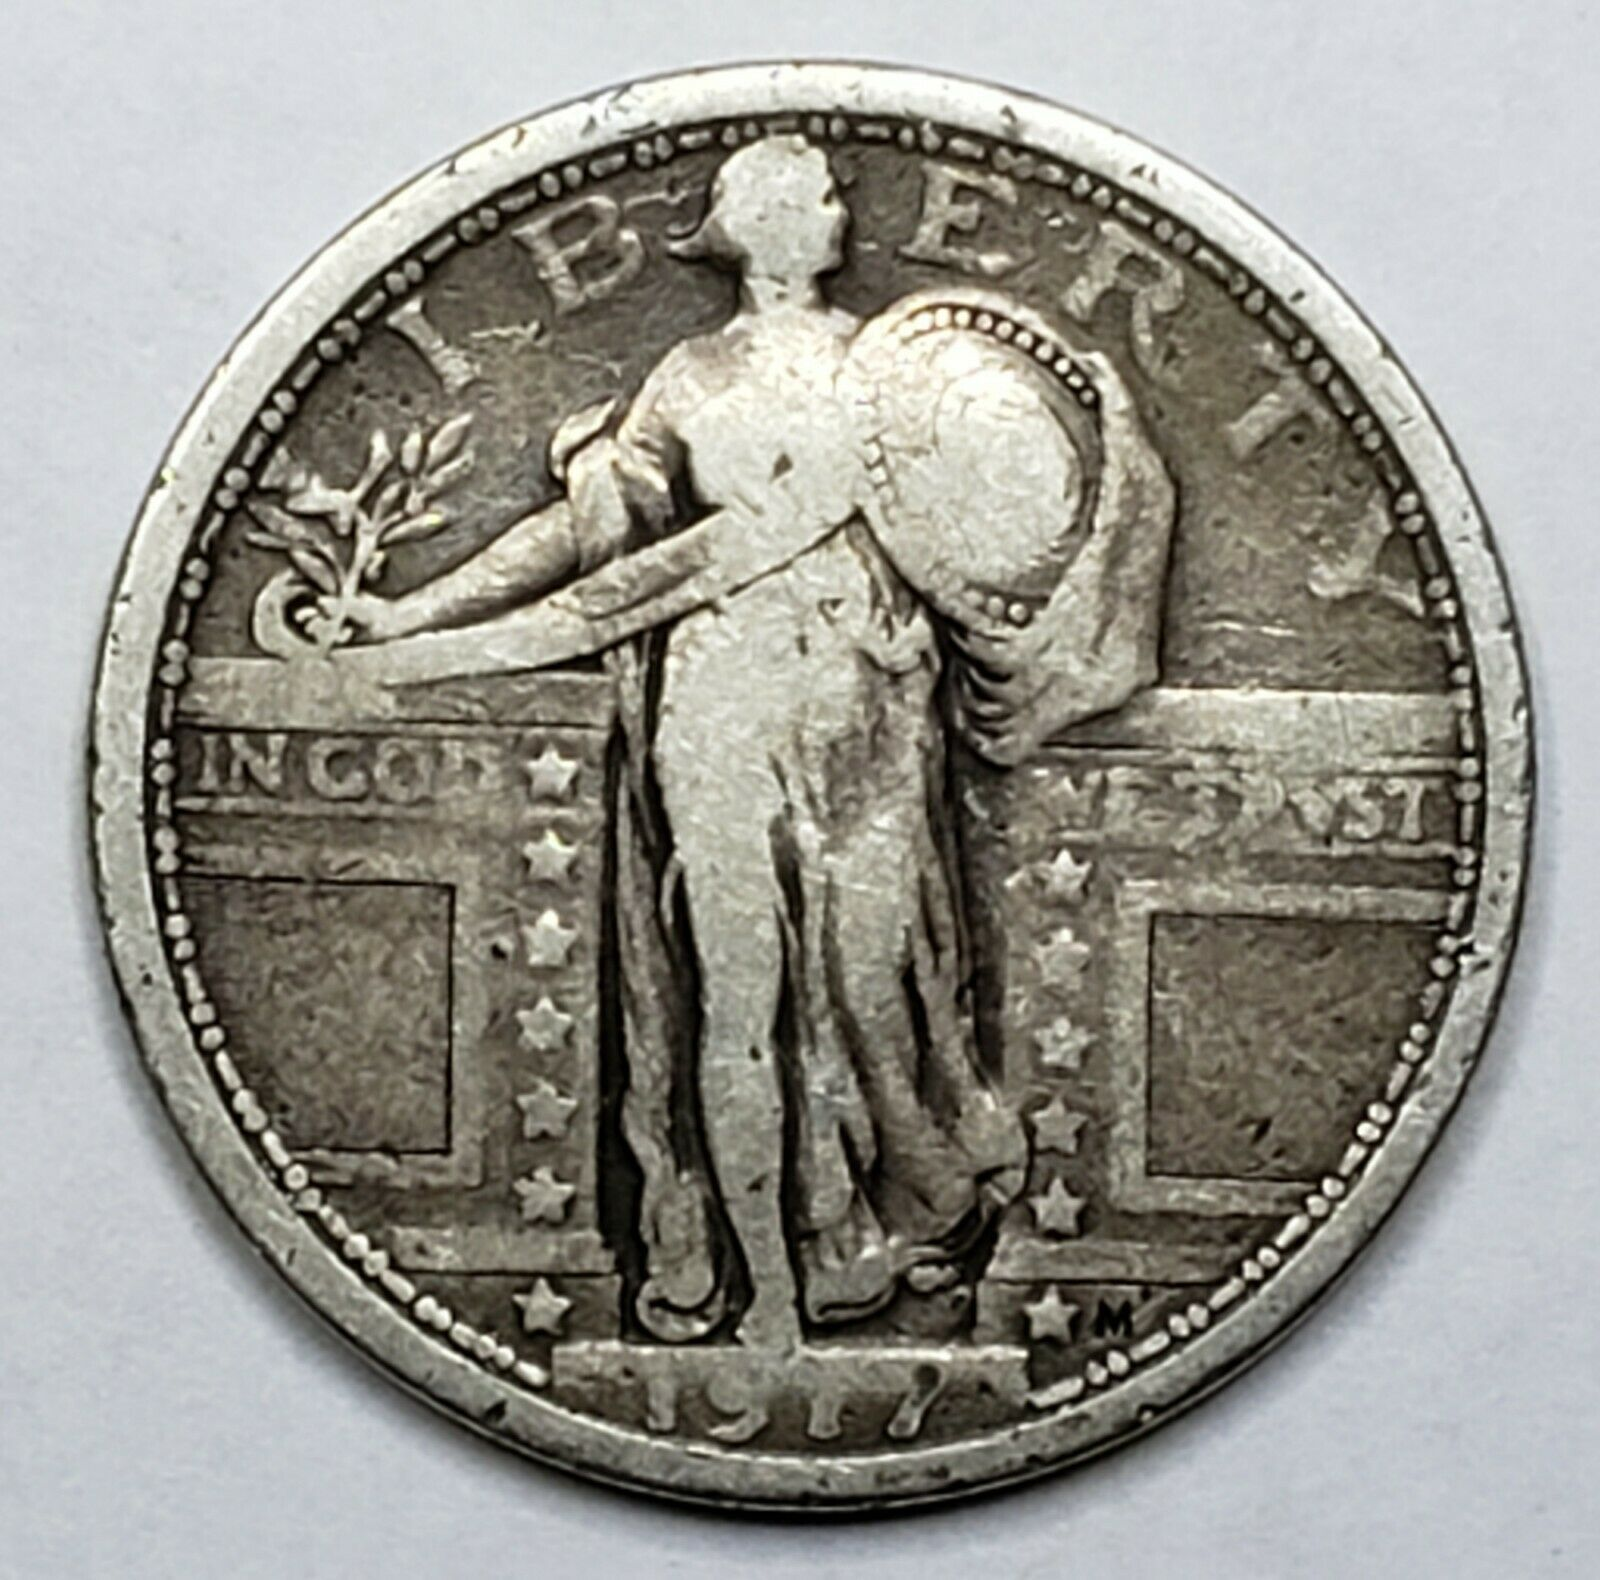 1917 Standing Liberty Silver Quarter Coin Type 1 Lot 519-68